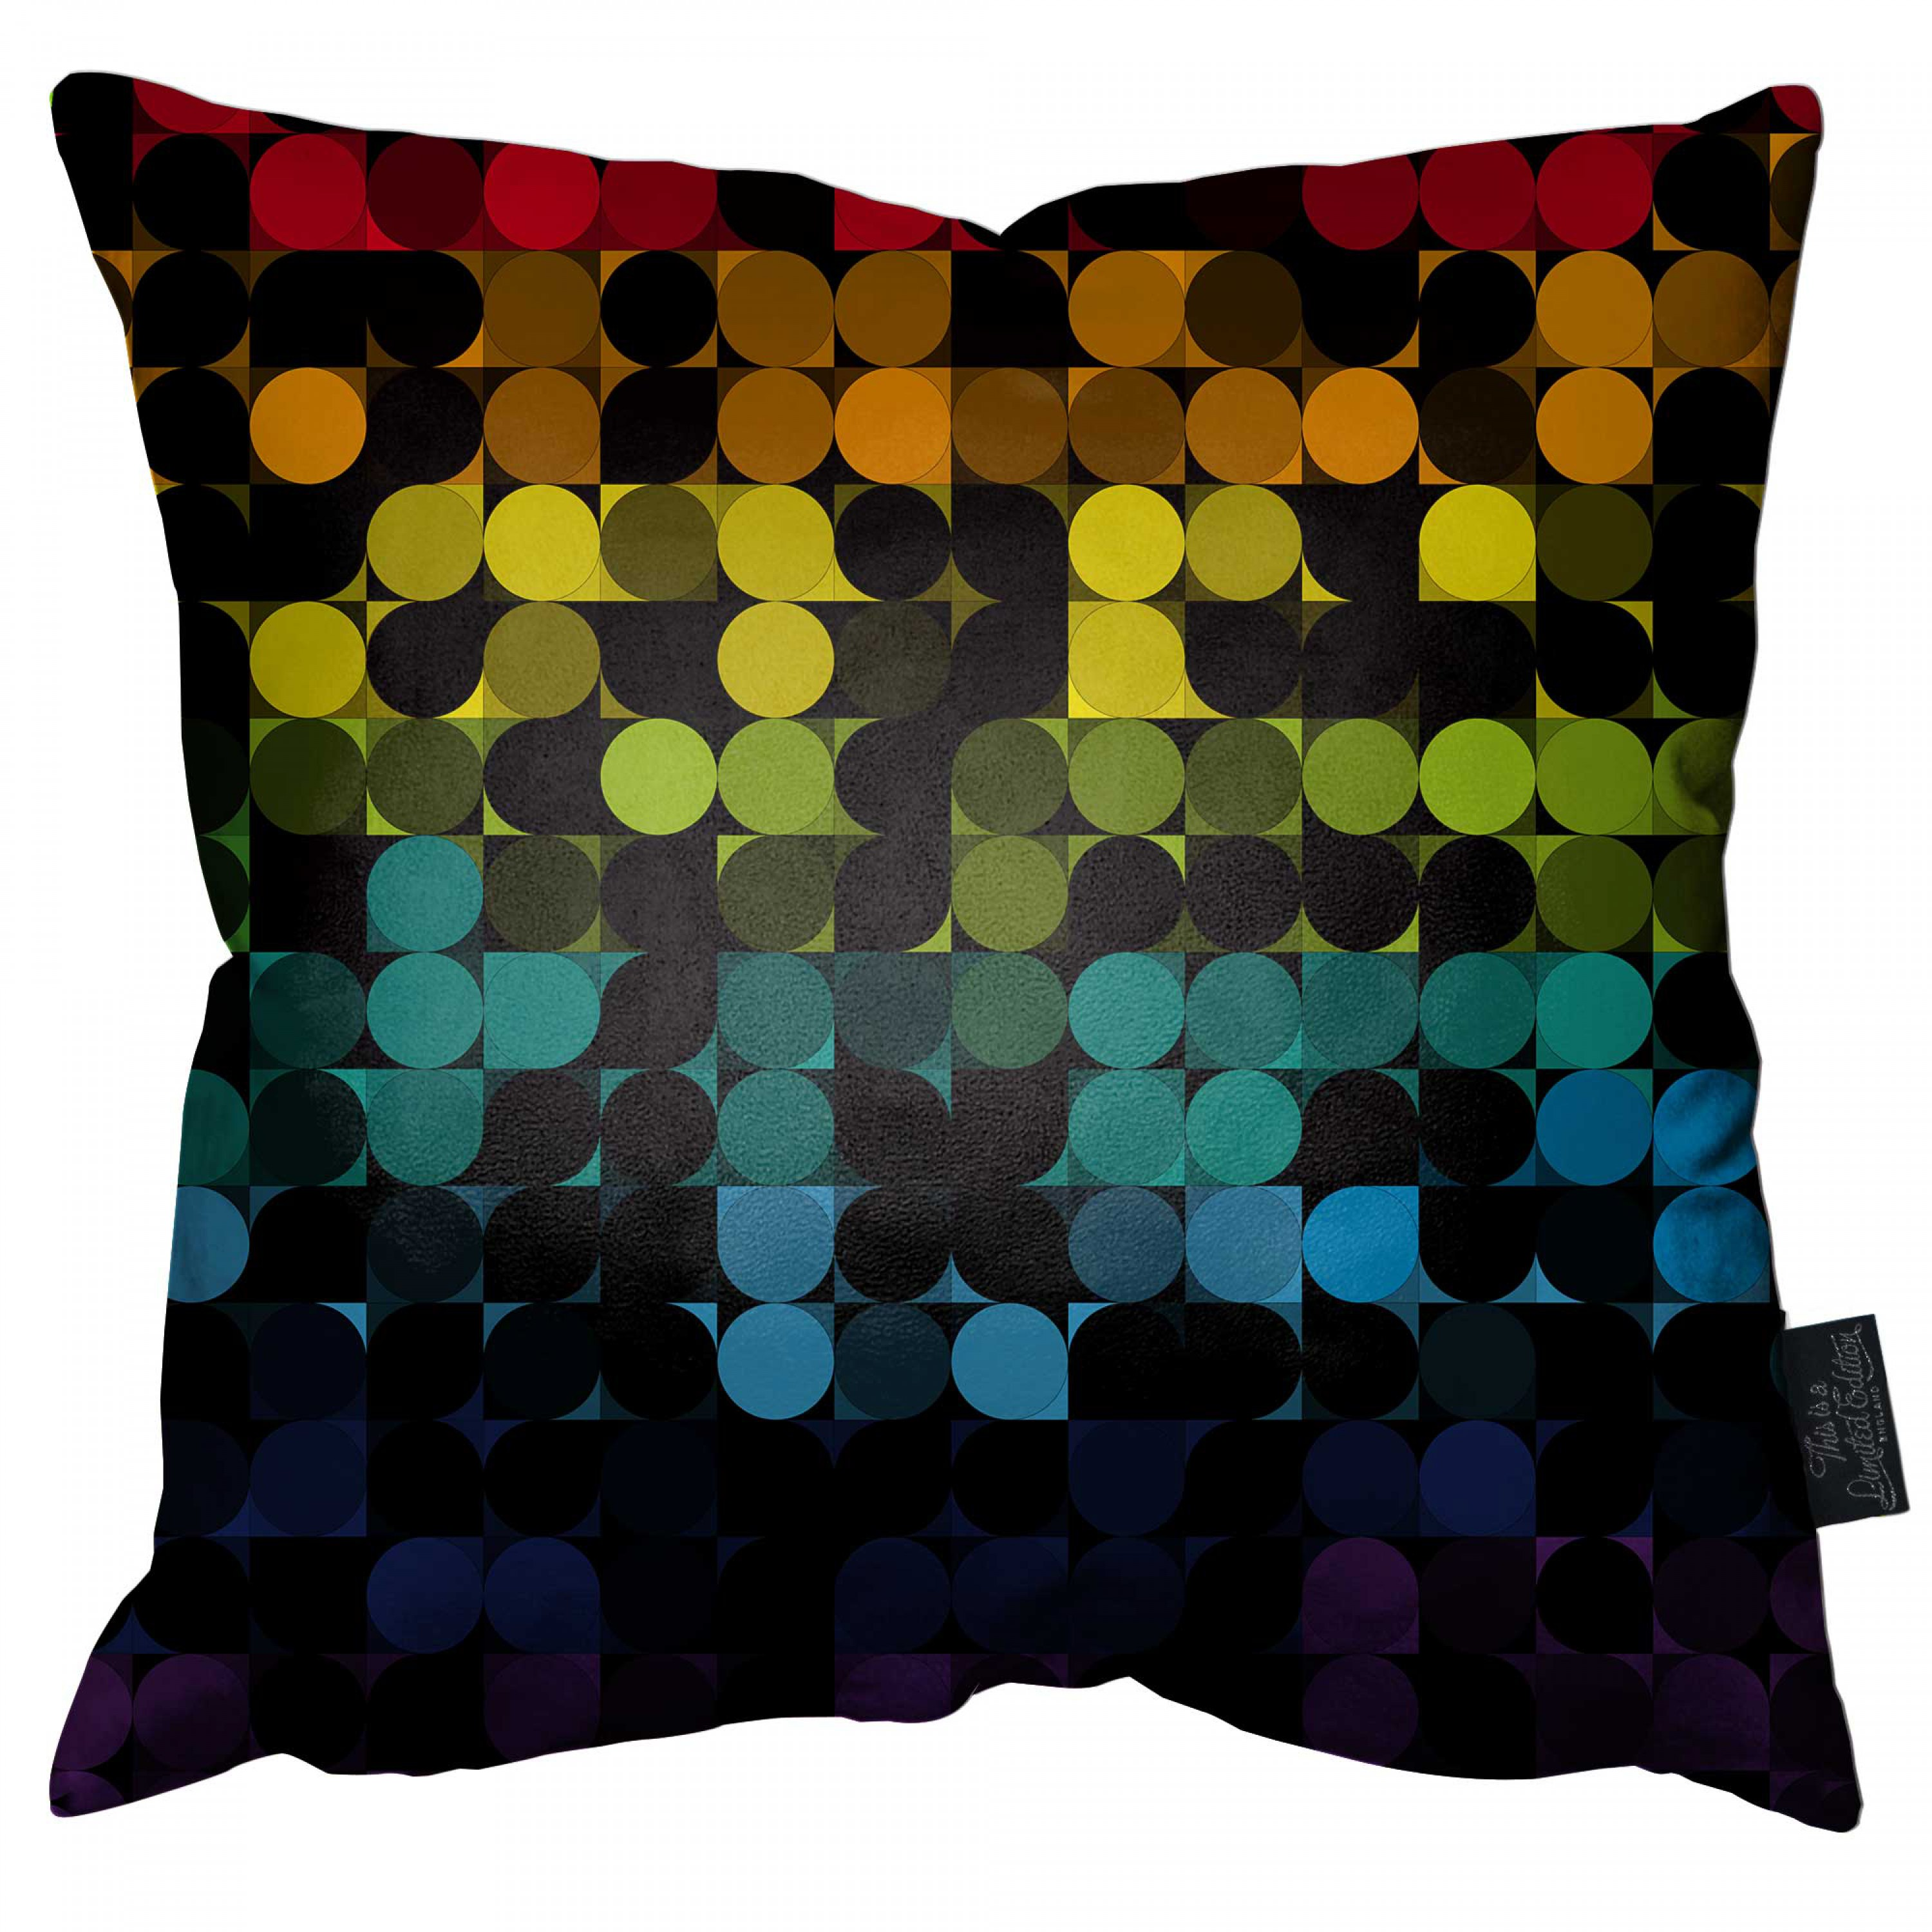 Dotty Pillow